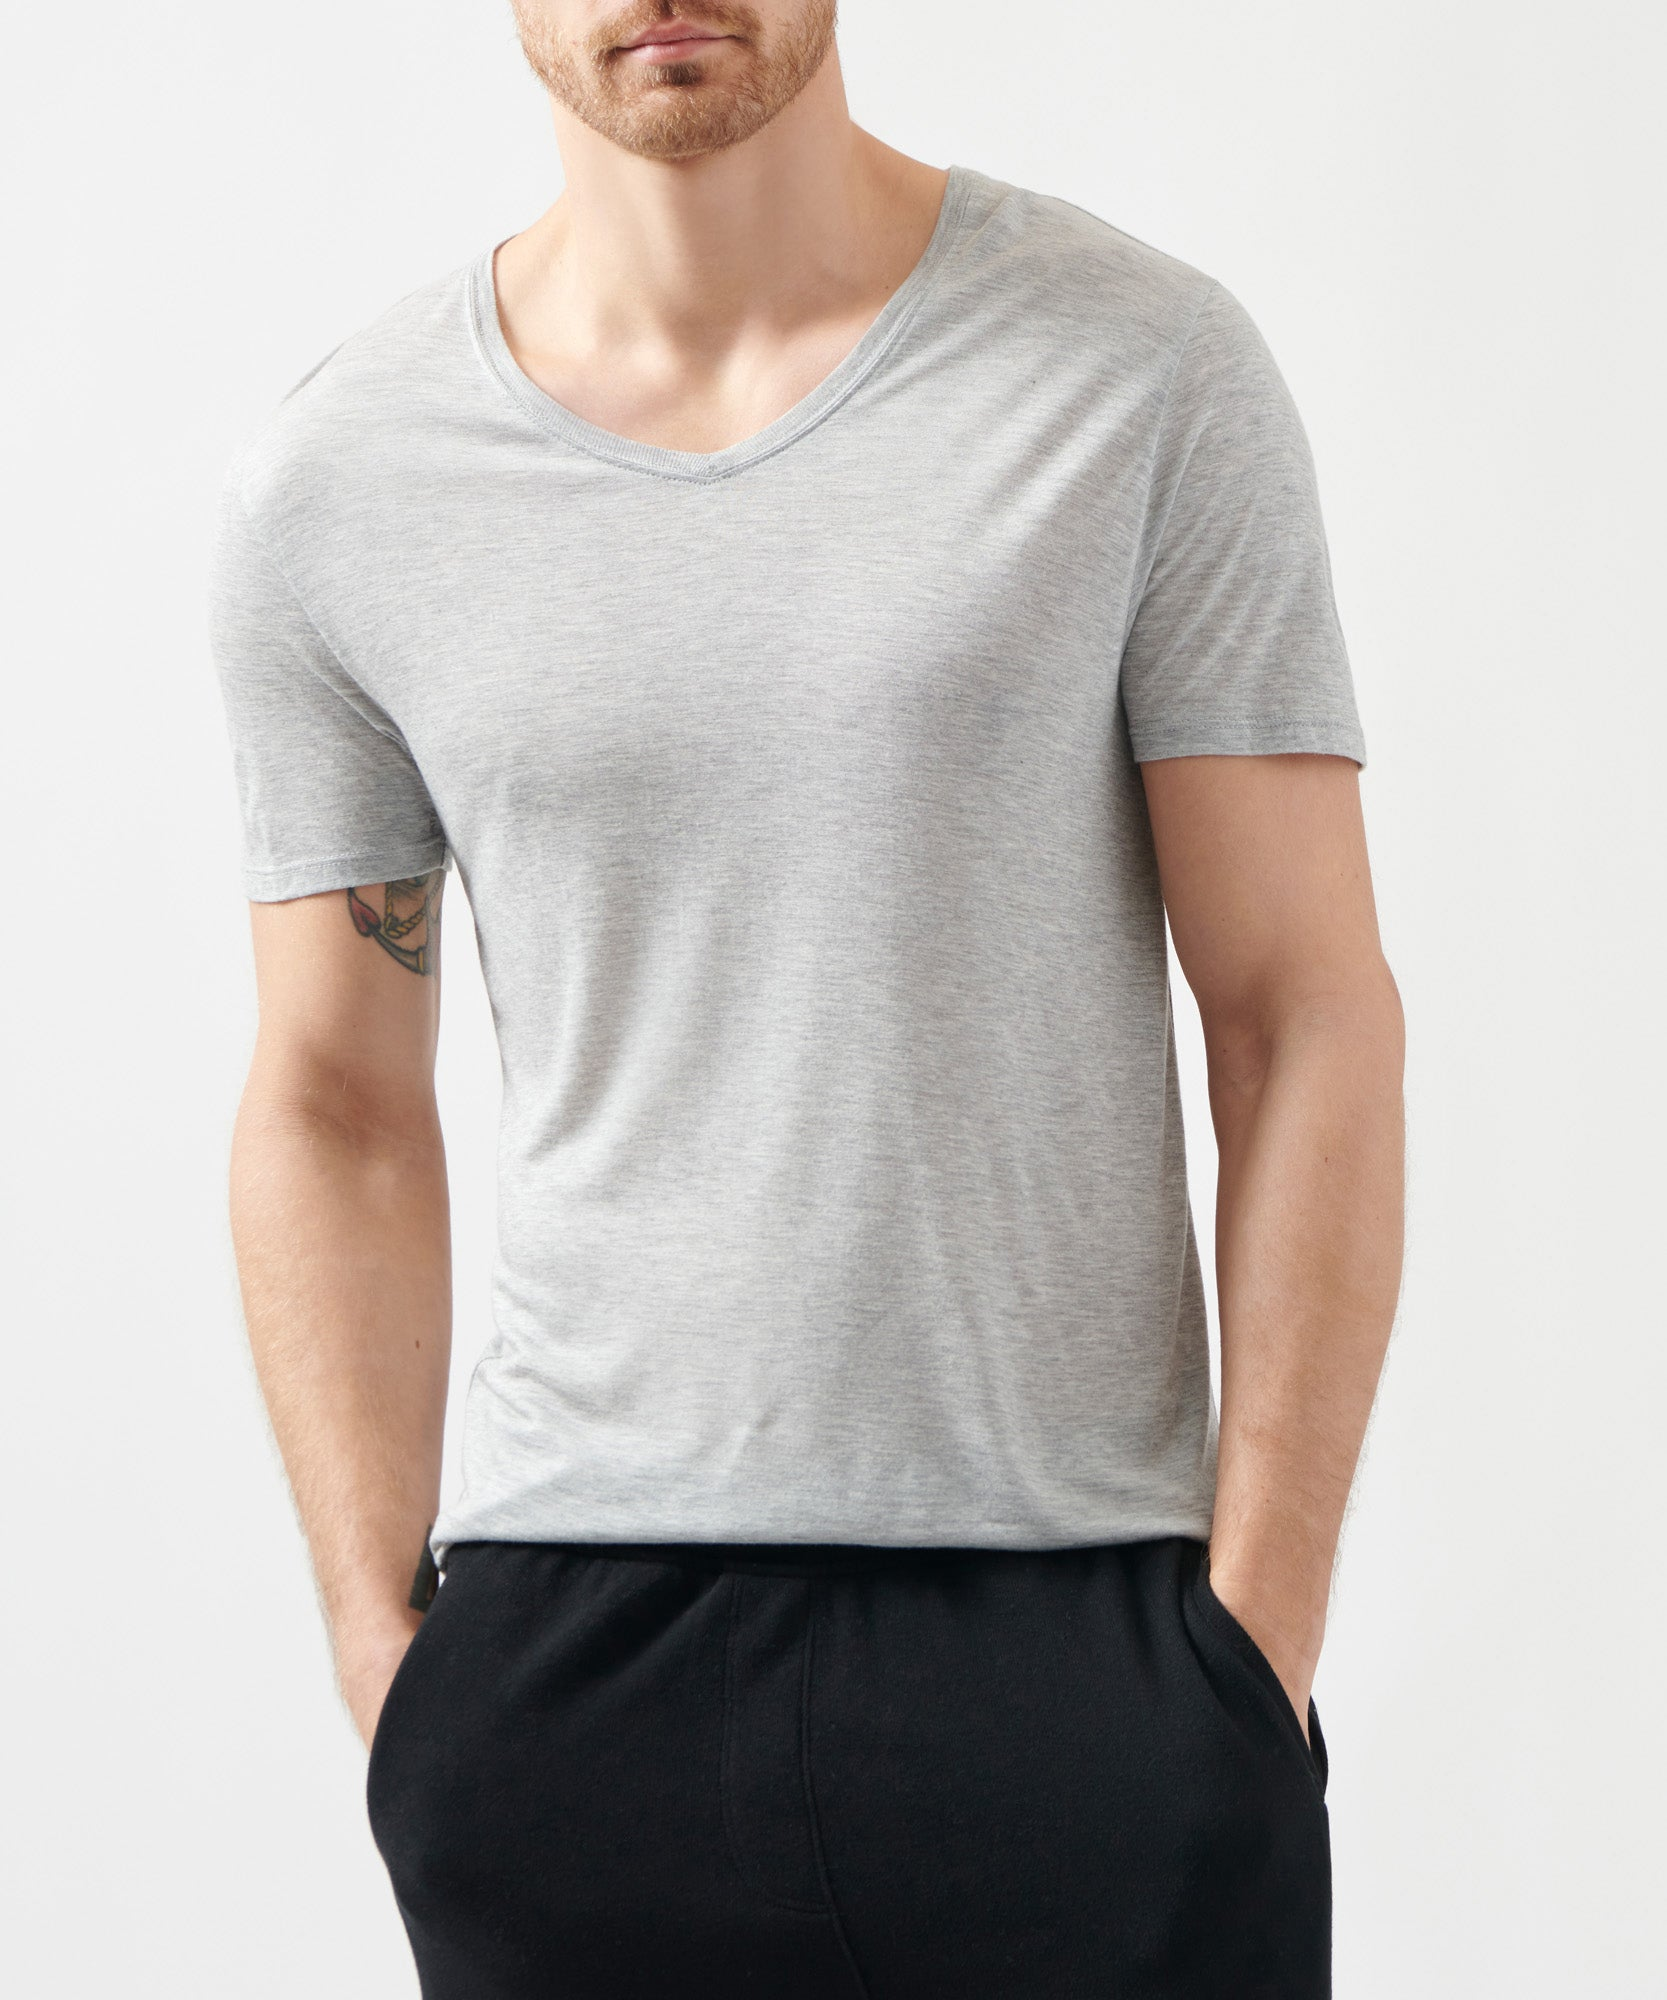 Heather Grey Modal Jersey V-Neck Tee - Men's Jersey Short Sleeve Tee by ATM Anthony Thomas Melillo